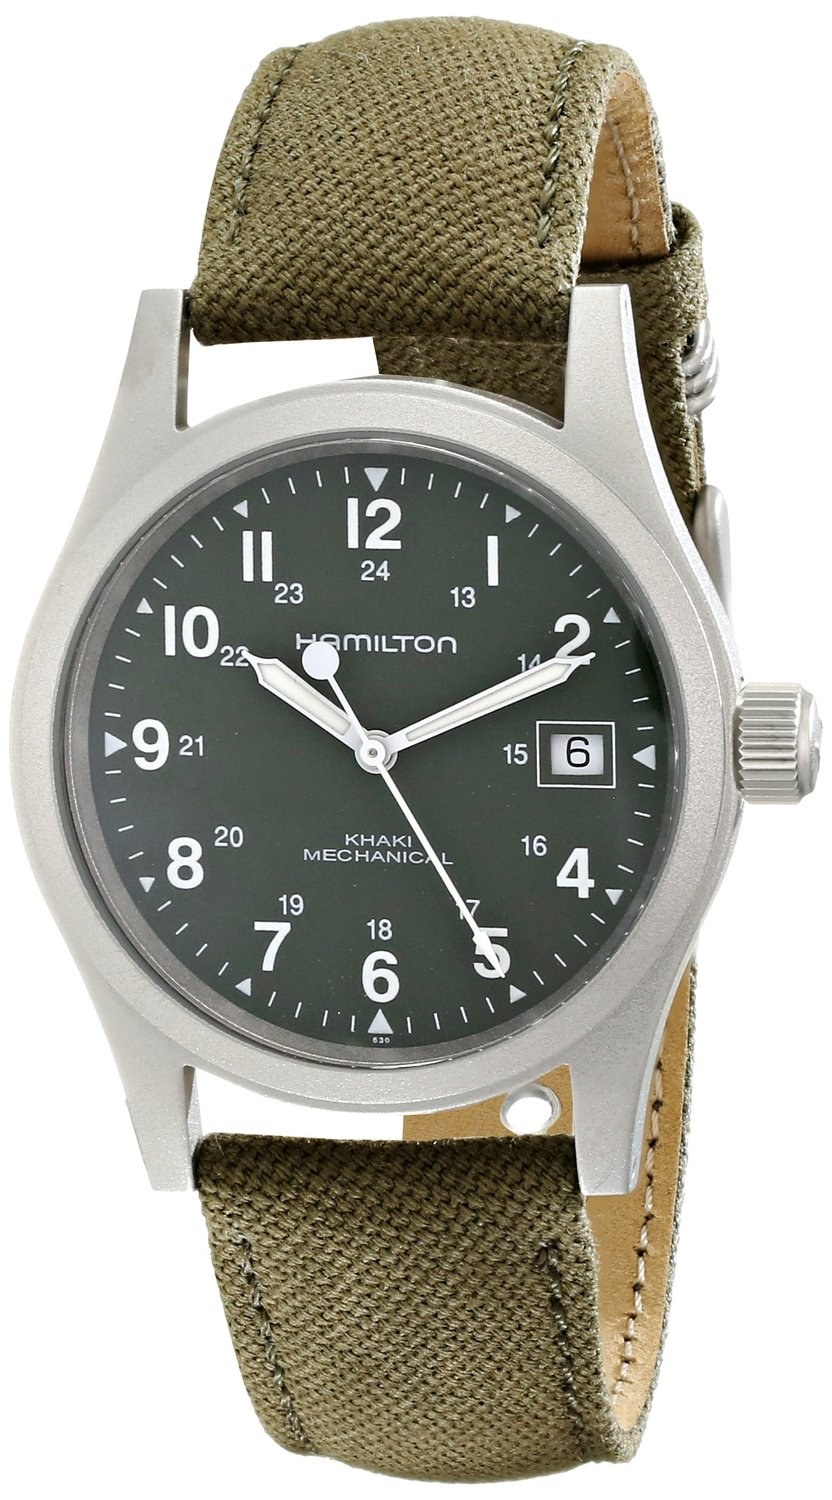 stylish under now story wear dollar in right watches buy timex gq days to what best pinterest